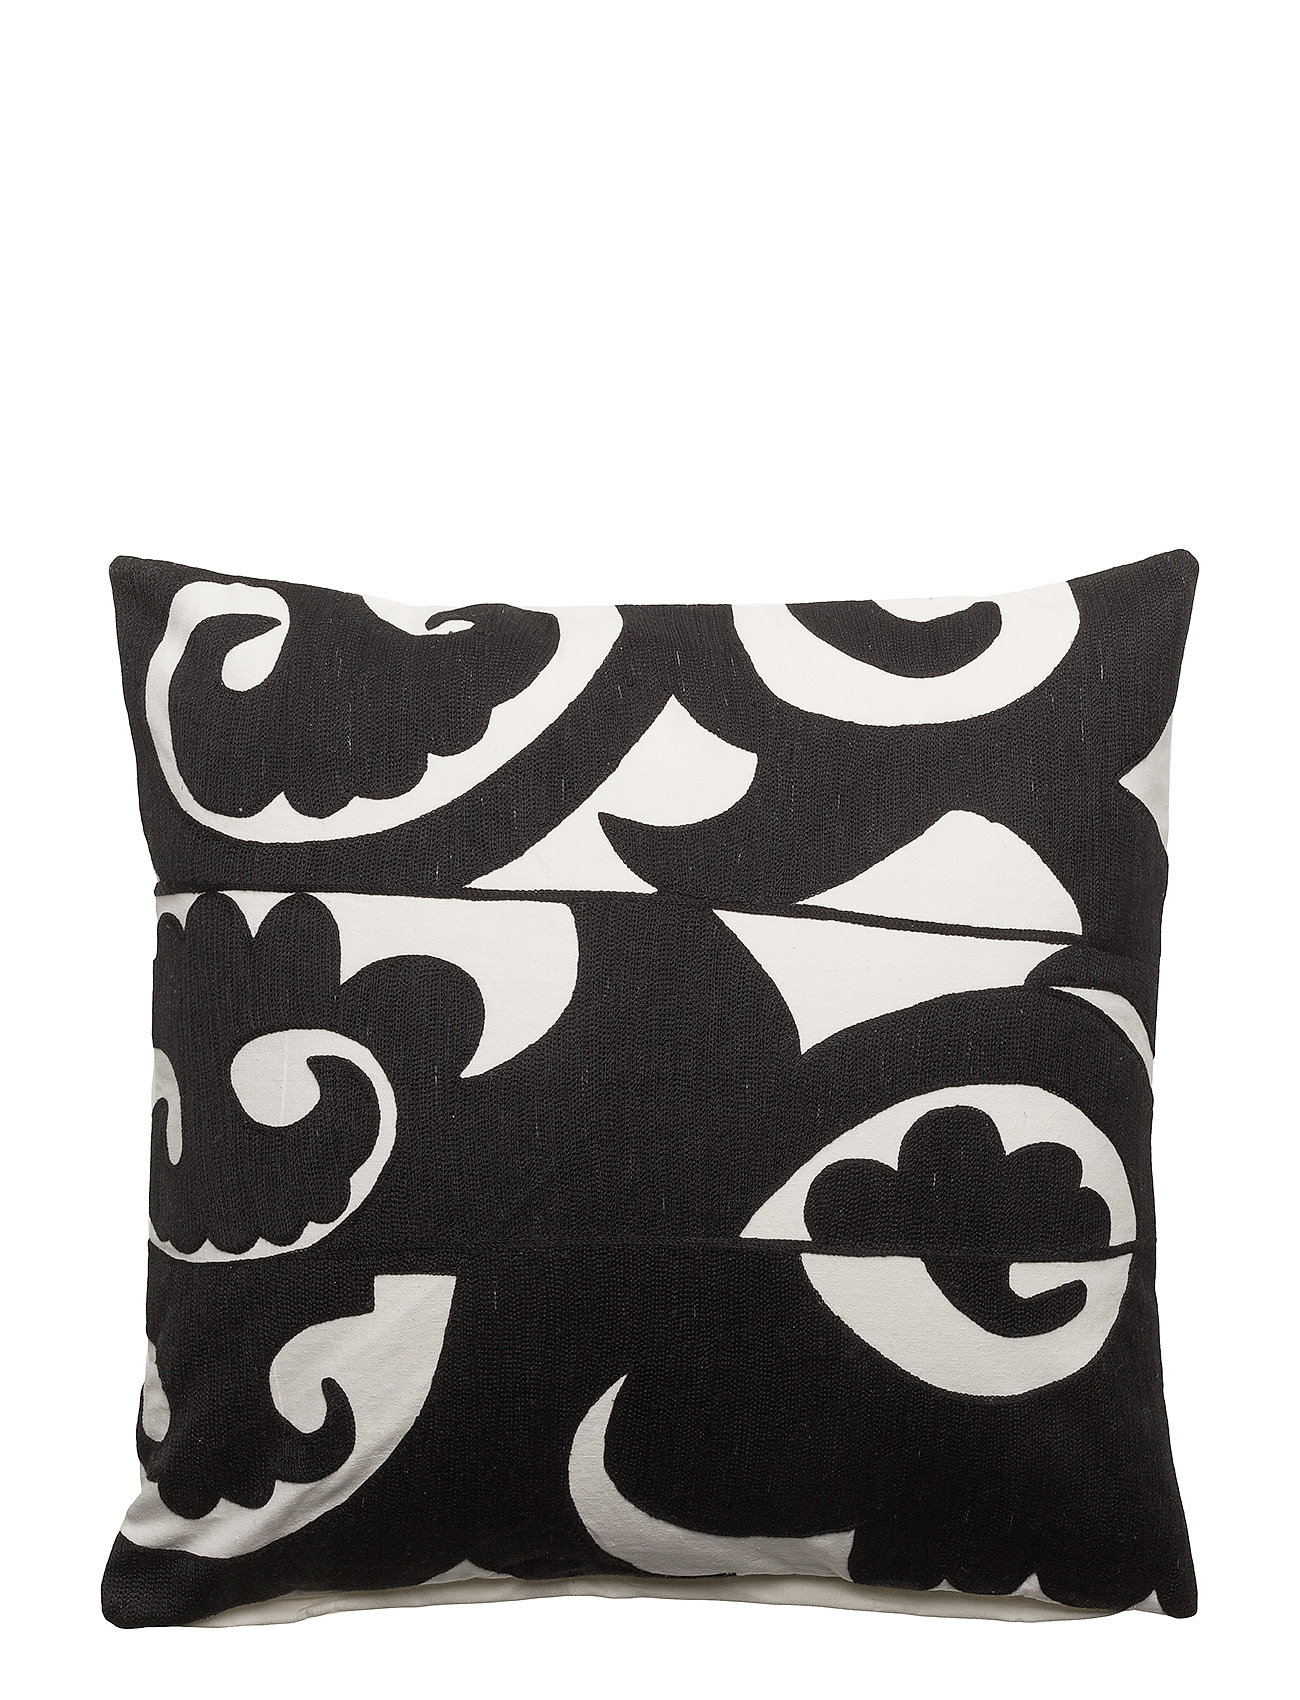 DAY Home Mehmet Cushion Cover - NAT. BLACK & WHITE